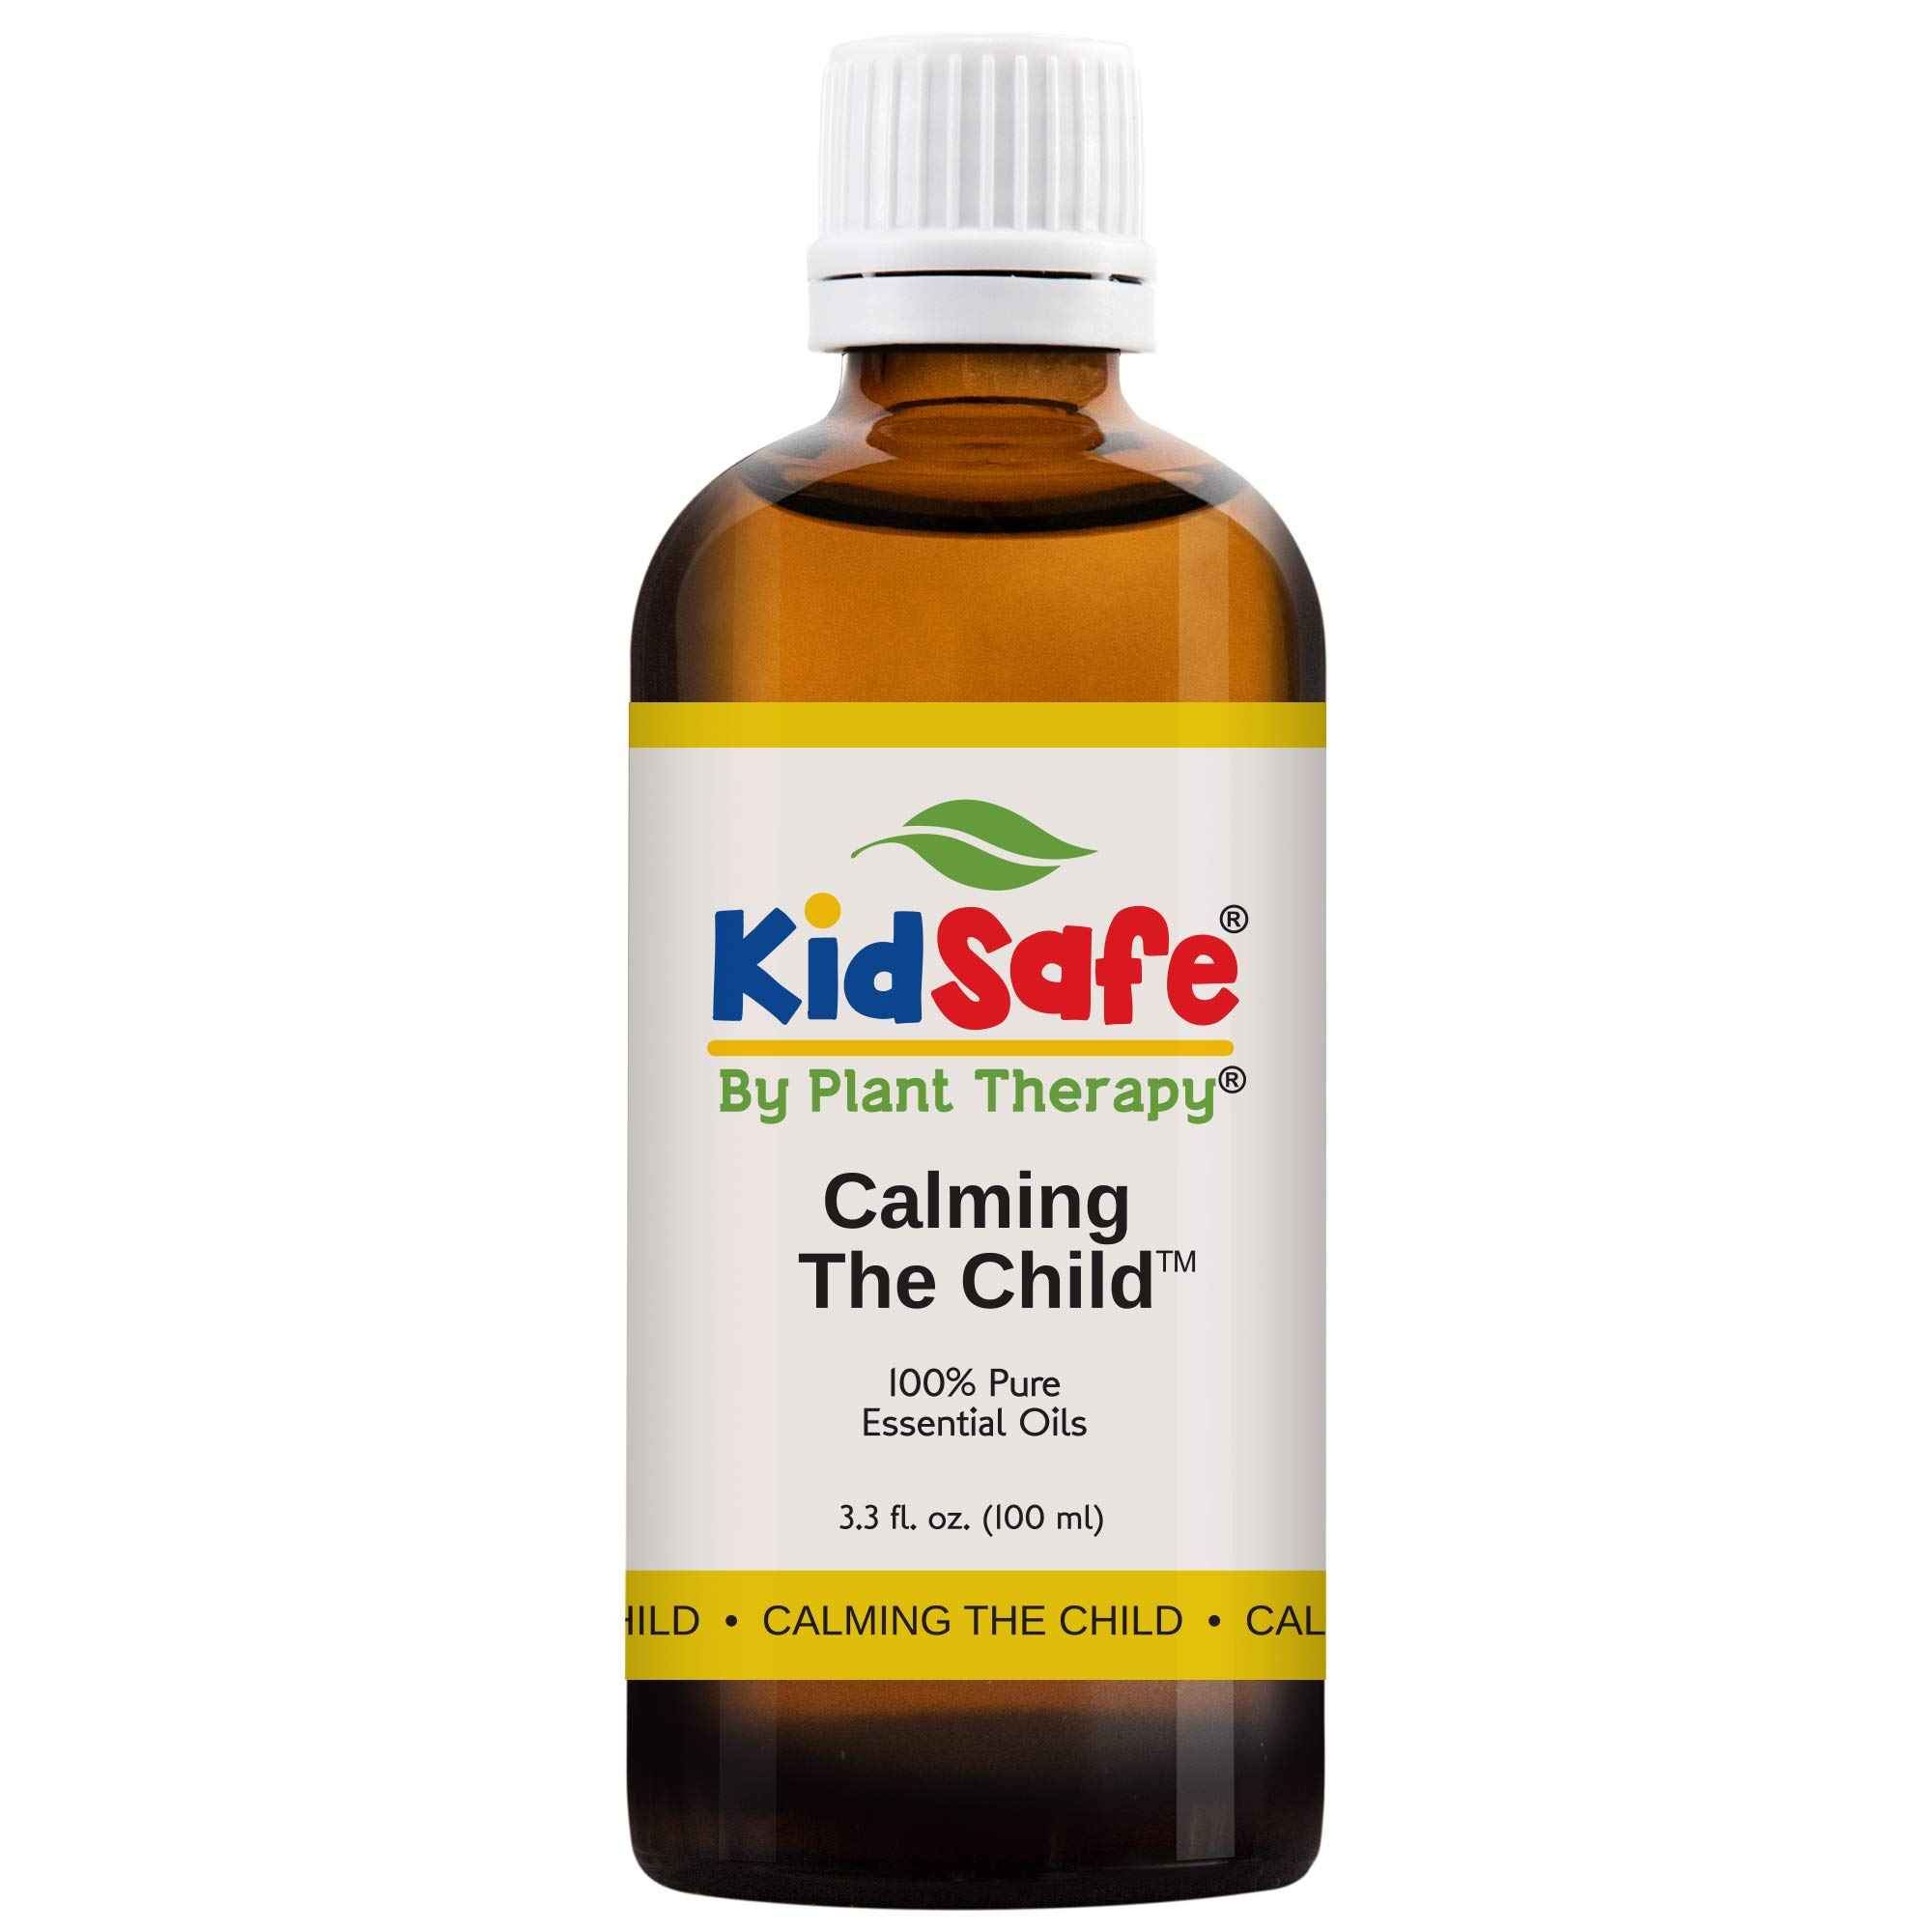 Plant Therapy Essential Oils Calming the Child Synergy - Relaxing and Soothing Blend 100% Pure, KidSafe, Undiluted, Natural Aromatherapy, Therapeutic Grade 100 mL (3.3 oz) by Plant Therapy